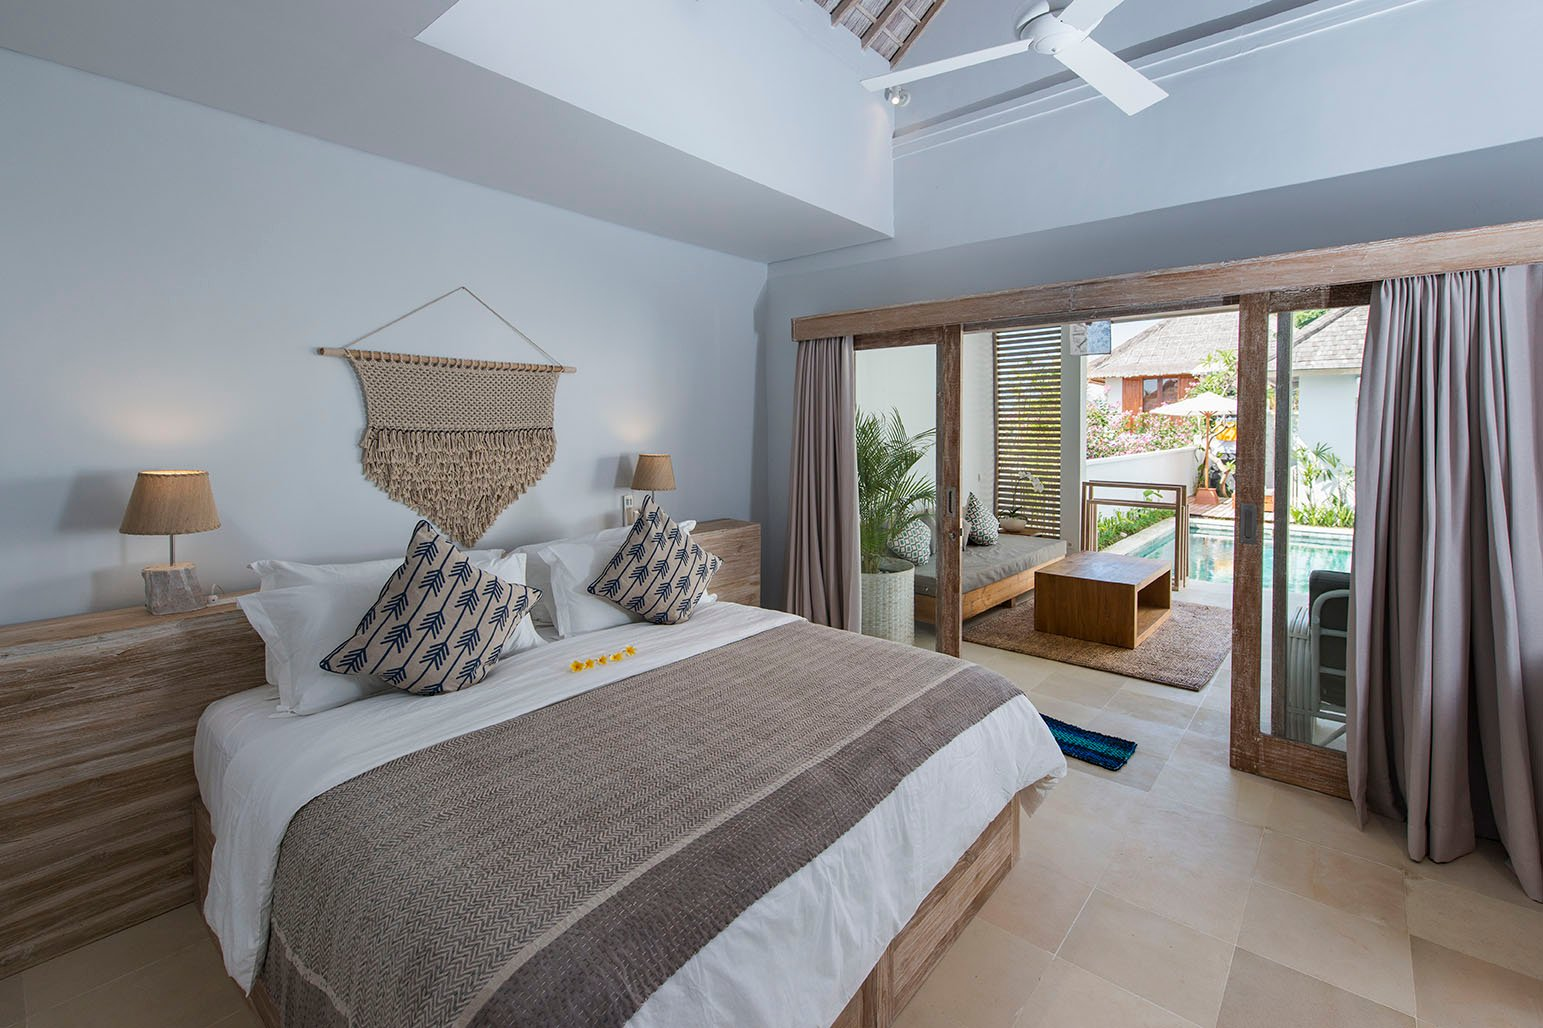 Bed in the Best Surf Camp of Bali - Queen Size